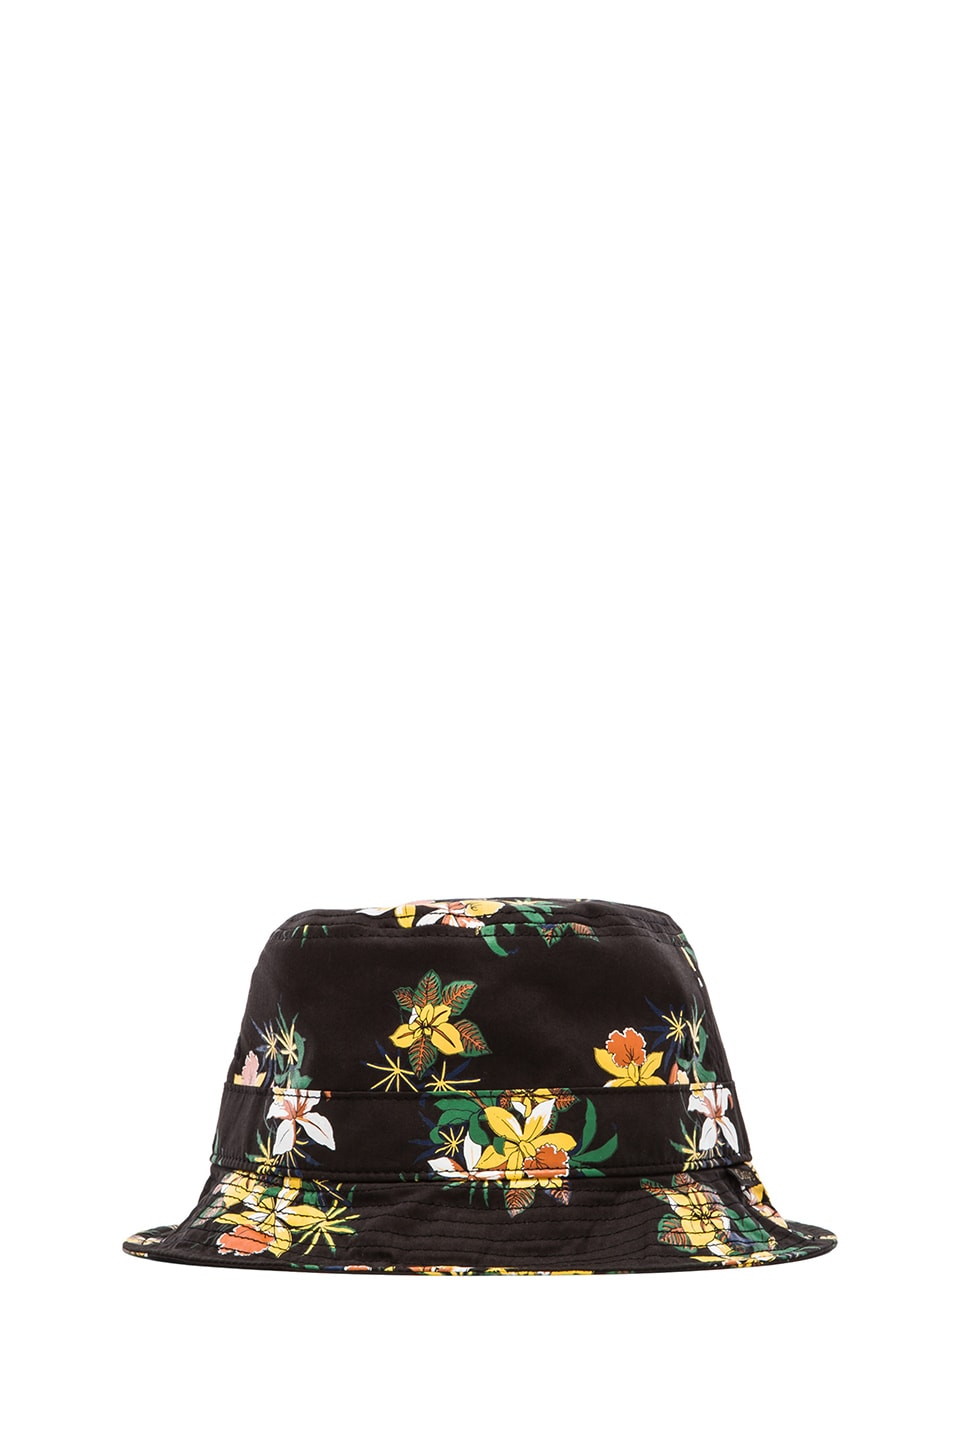 Obey Sativa Floral Bucket Hat in Black